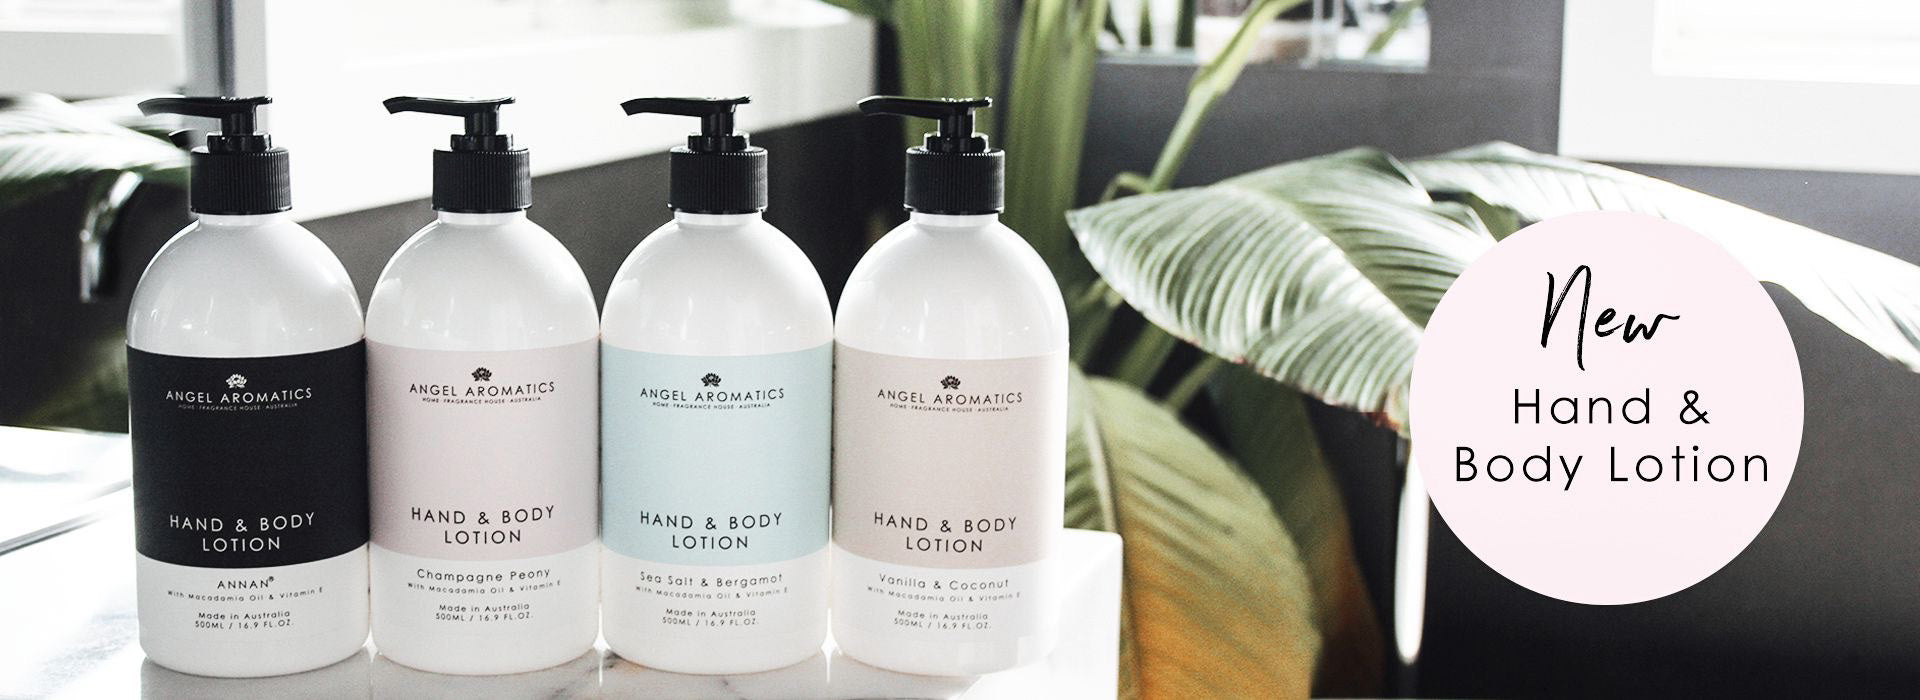 hand body lotions